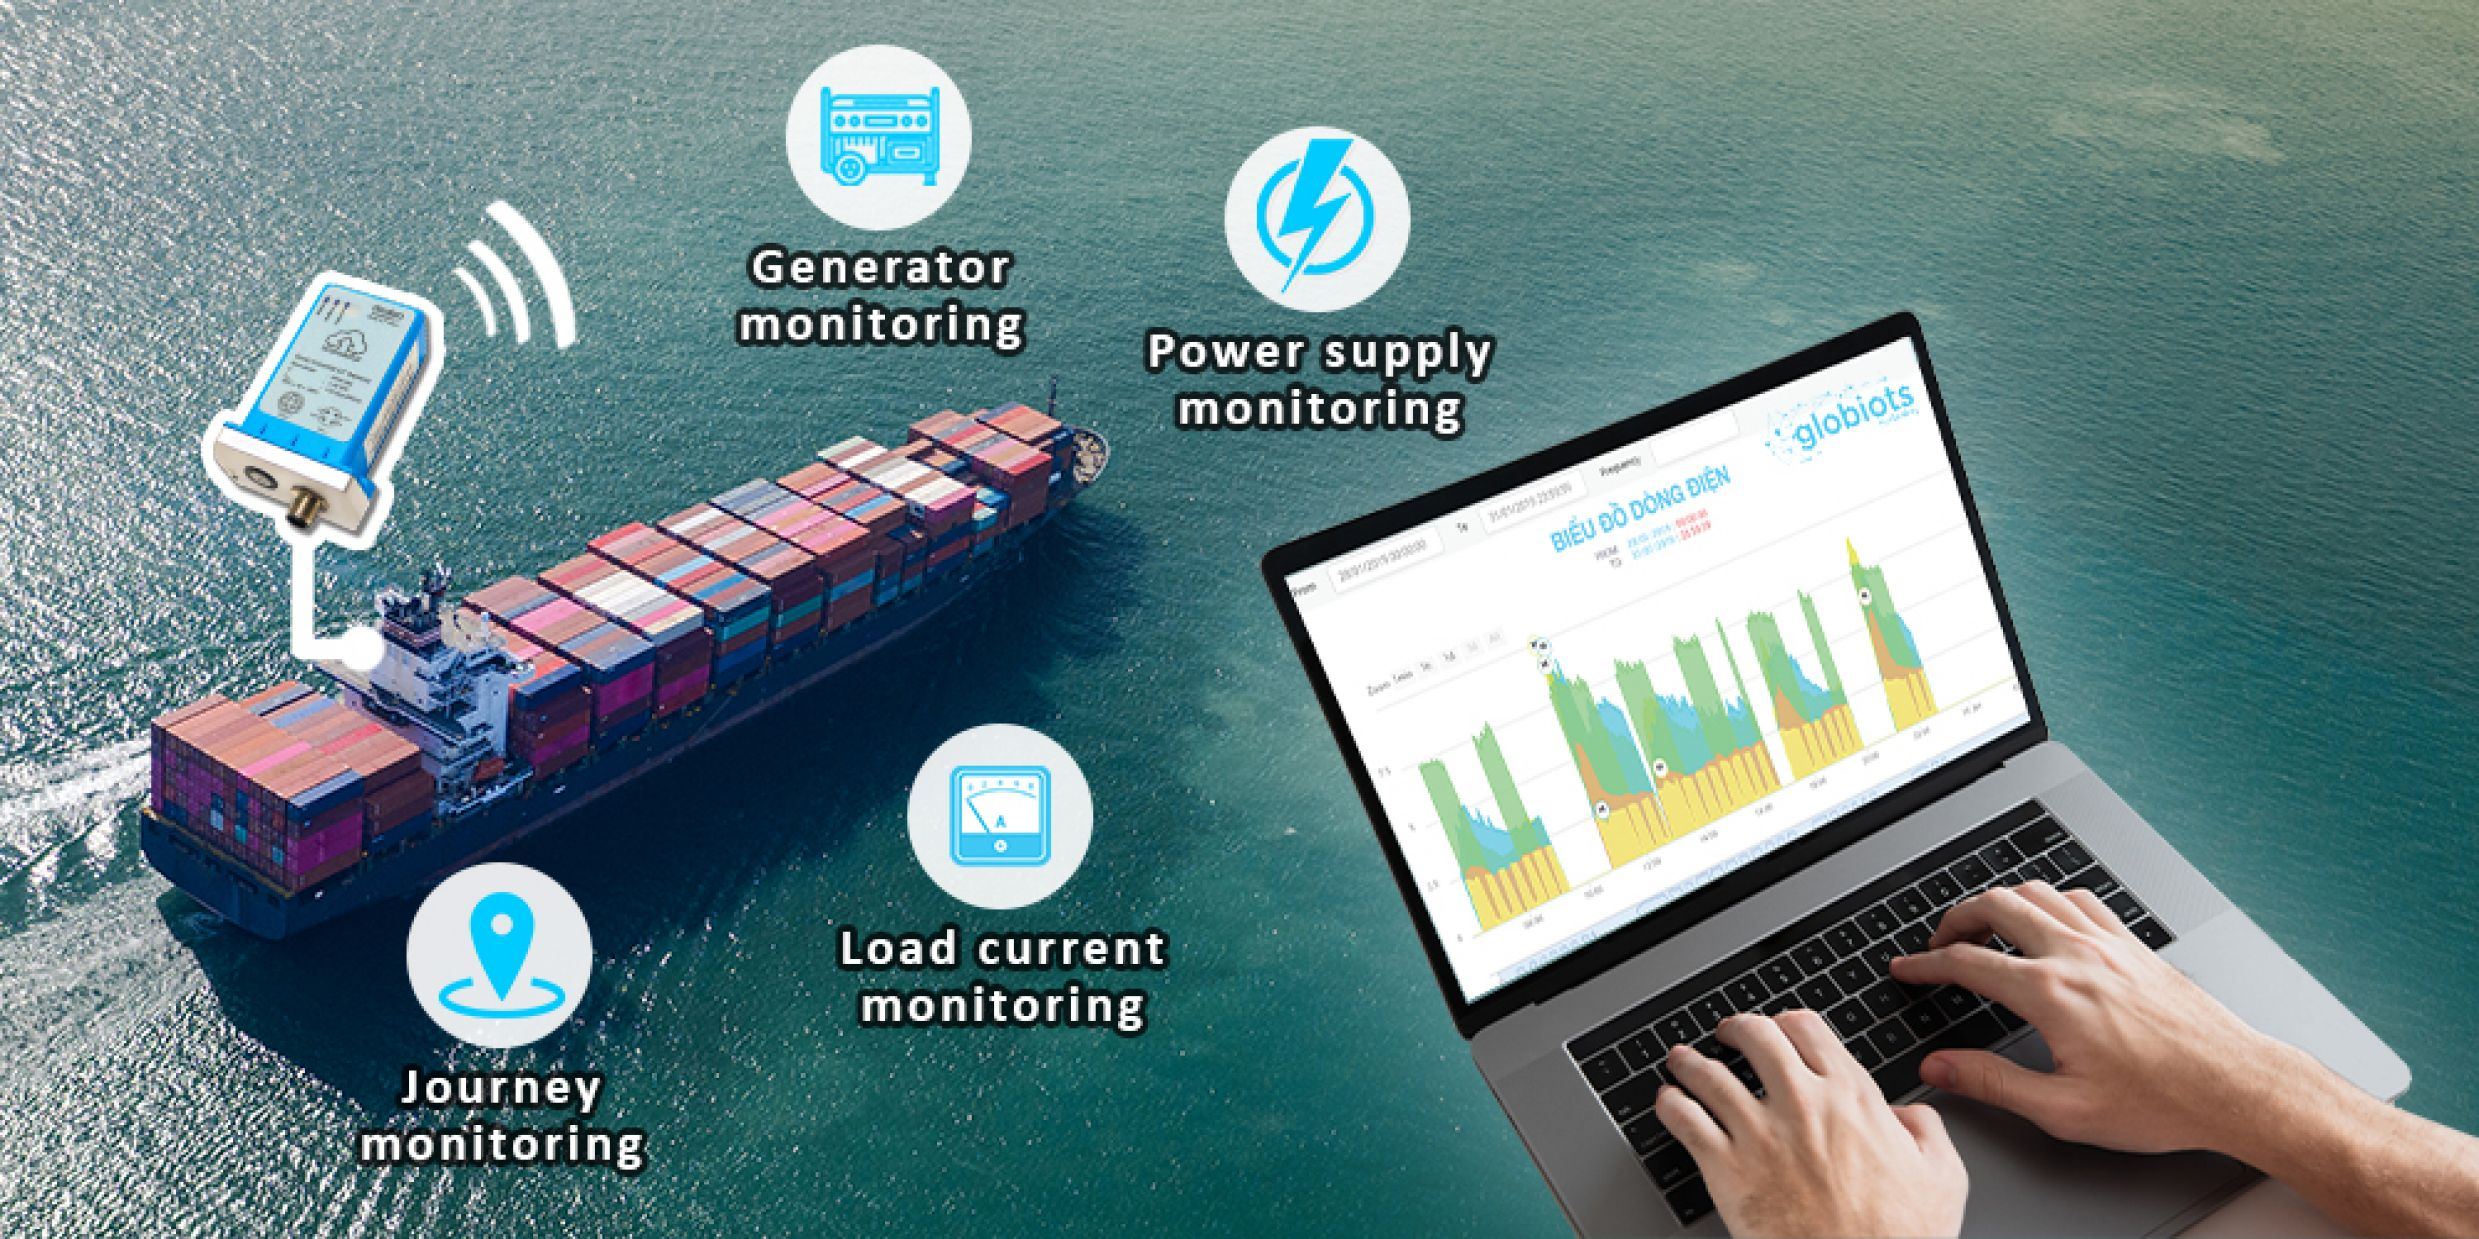 Solution of refrigerated container power supply monitoring on barge